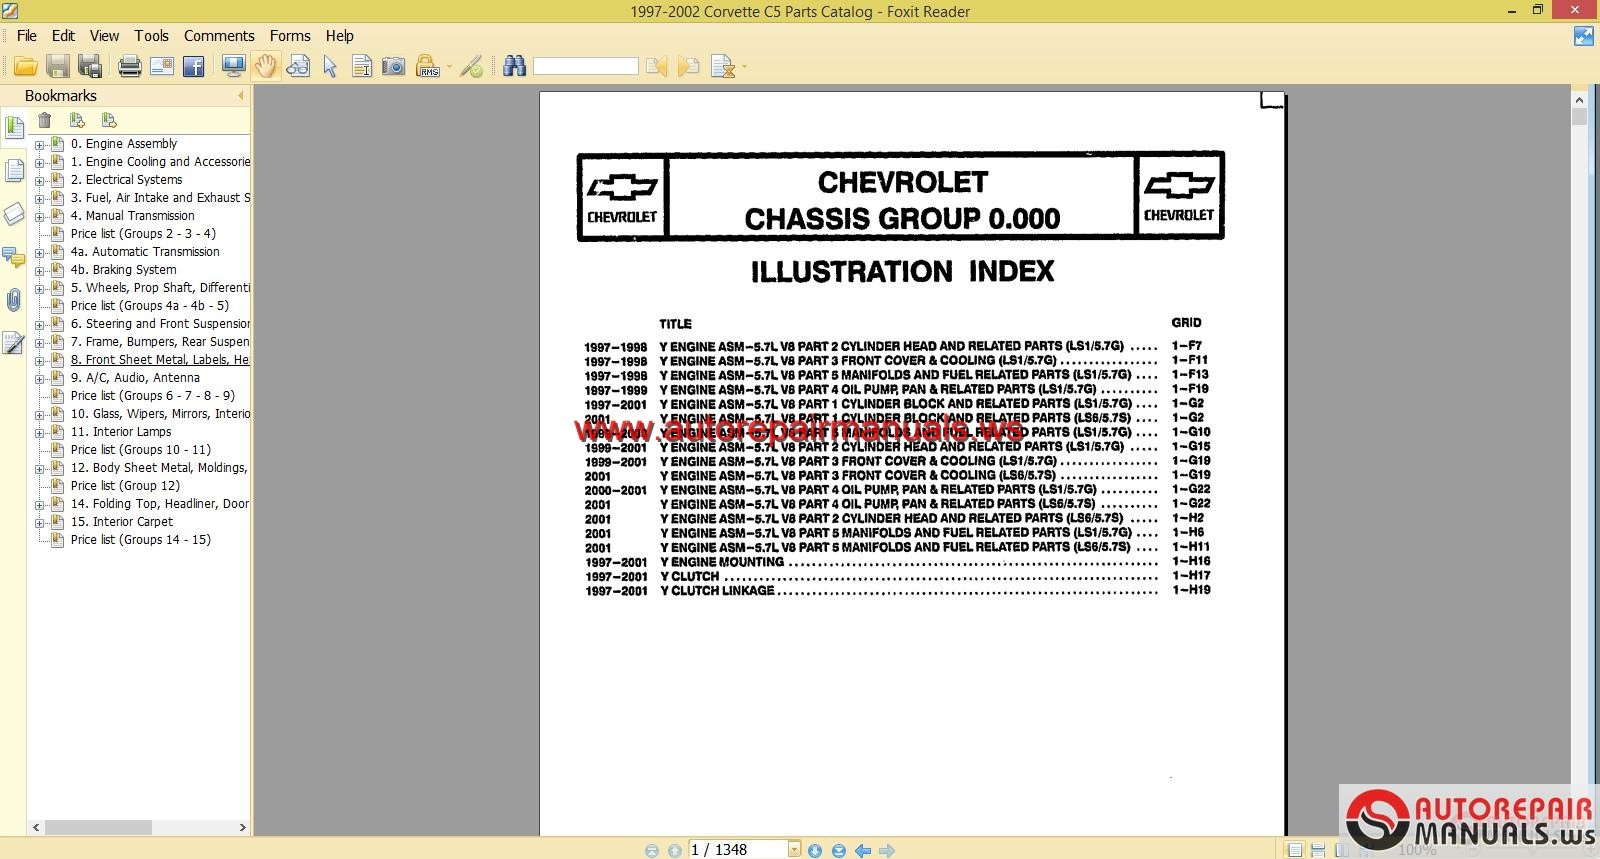 hight resolution of chevrolet corvette c5 5 7l 1997 2002 parts manual auto repair car tire parts diagram c5 parts diagram